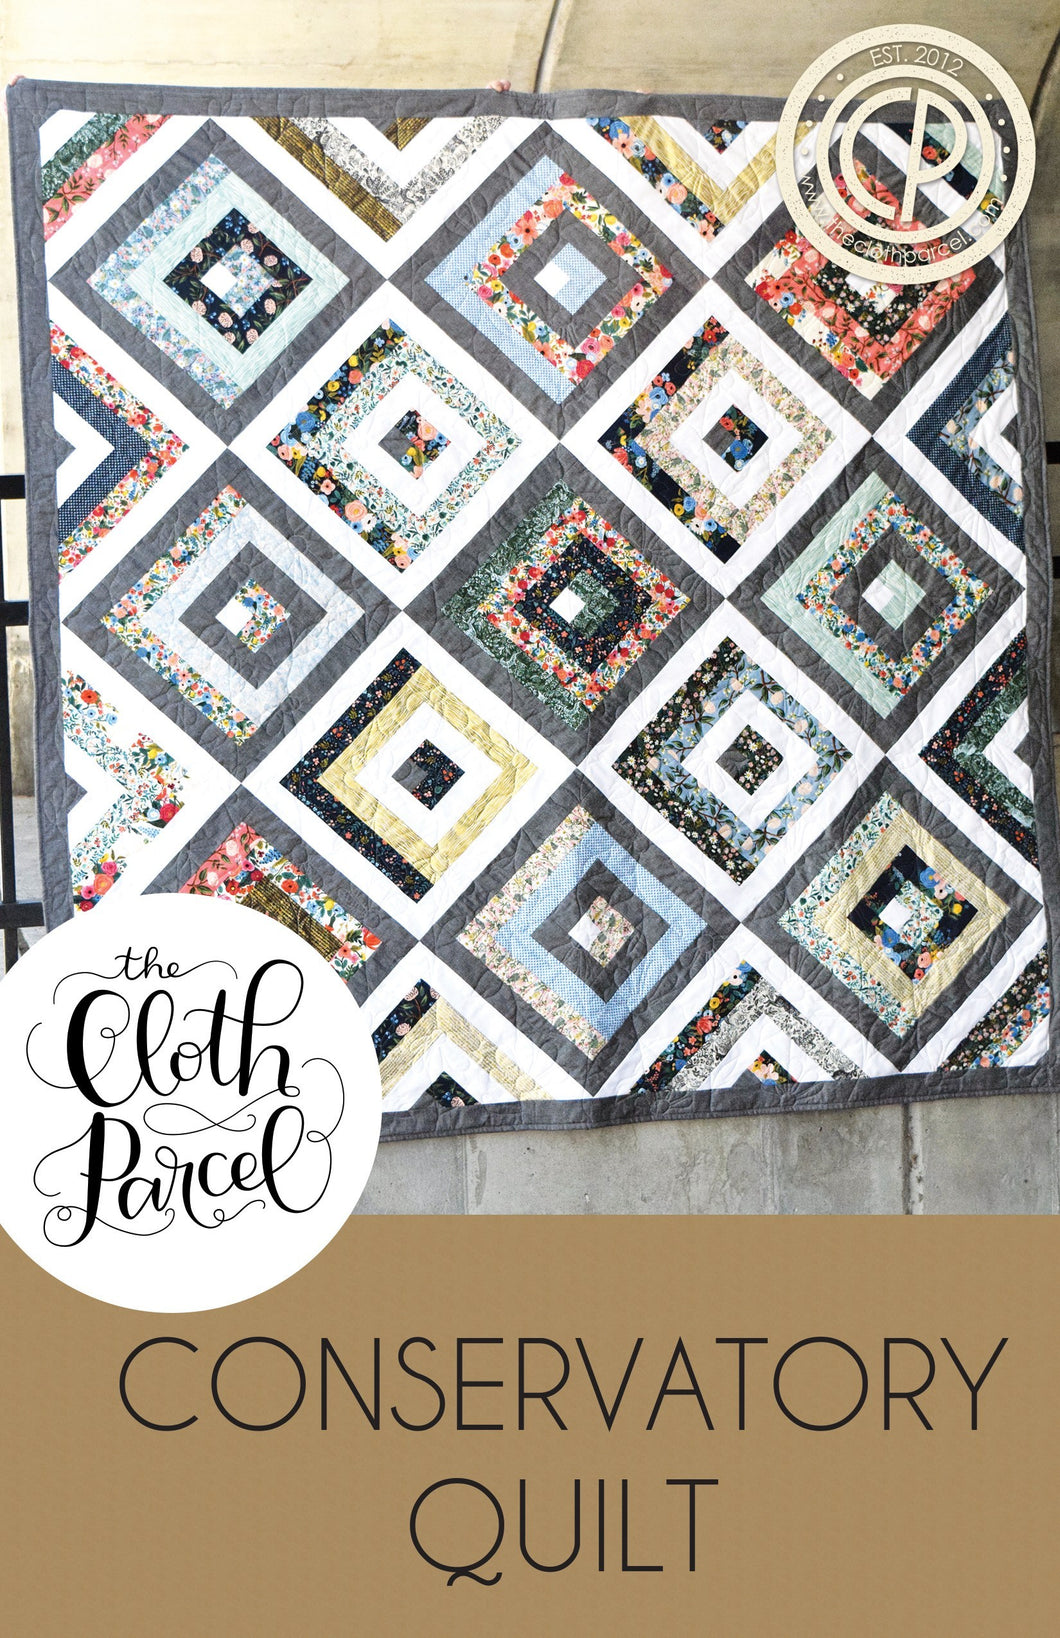 Conservatory Quilt Pattern by The Cloth Parcel